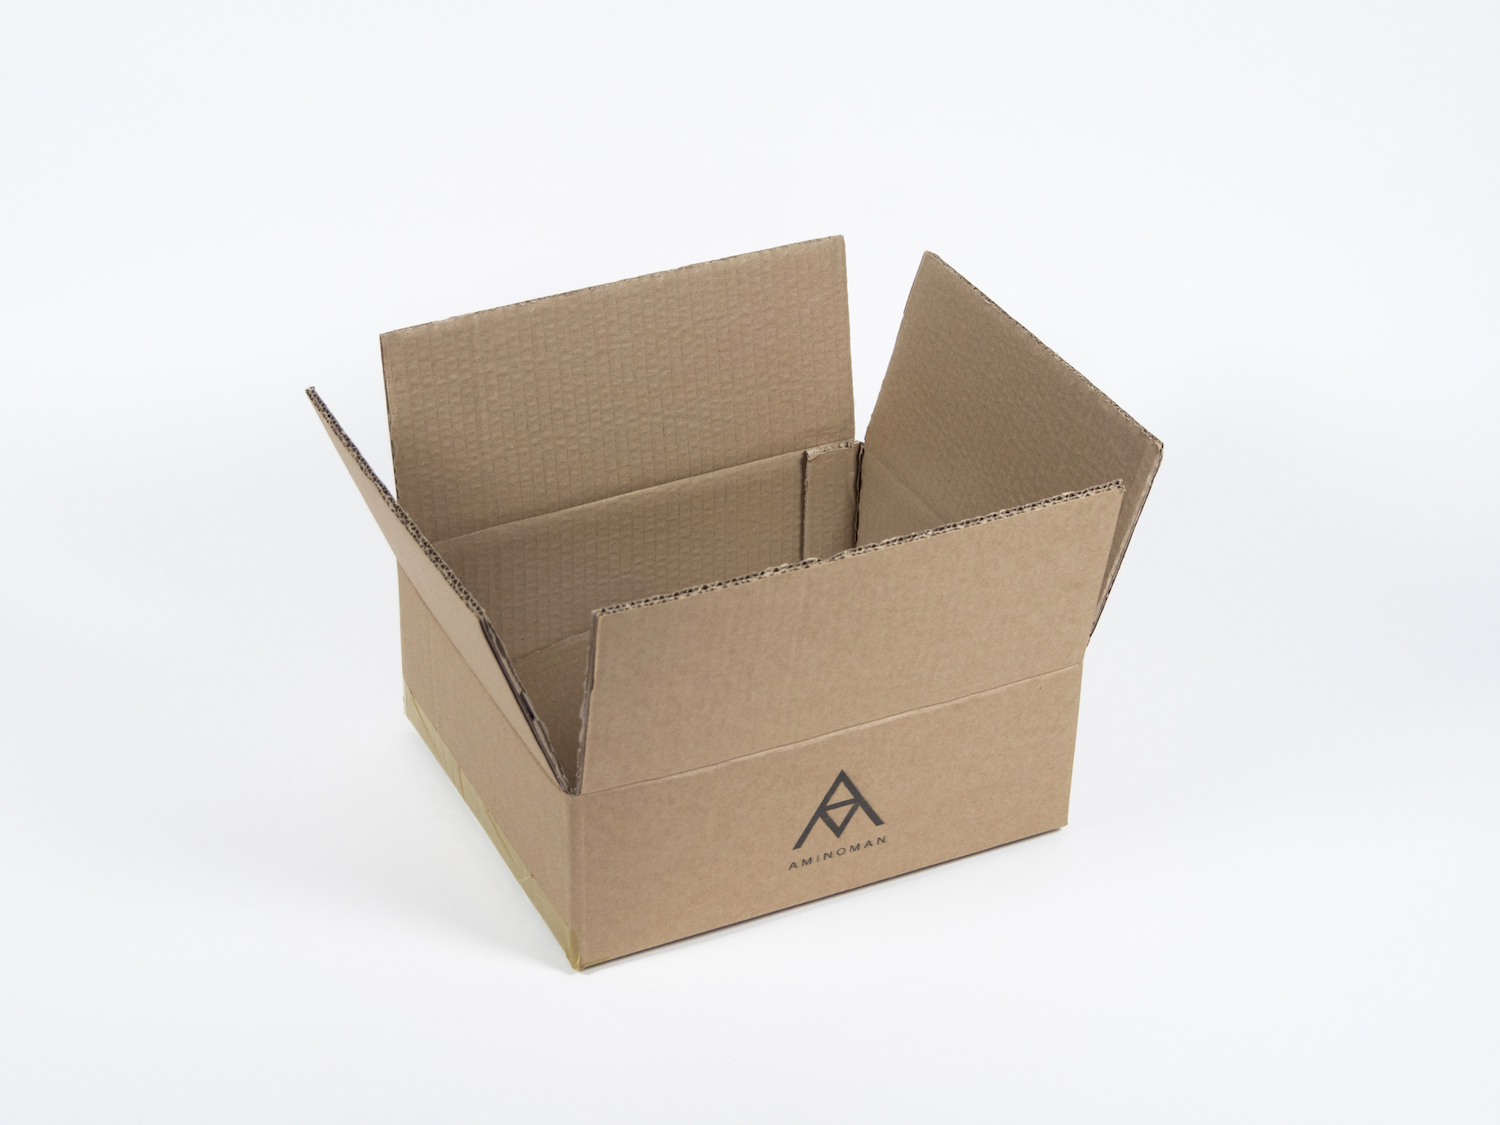 A simple custom printed cardboard box from Boxtopia